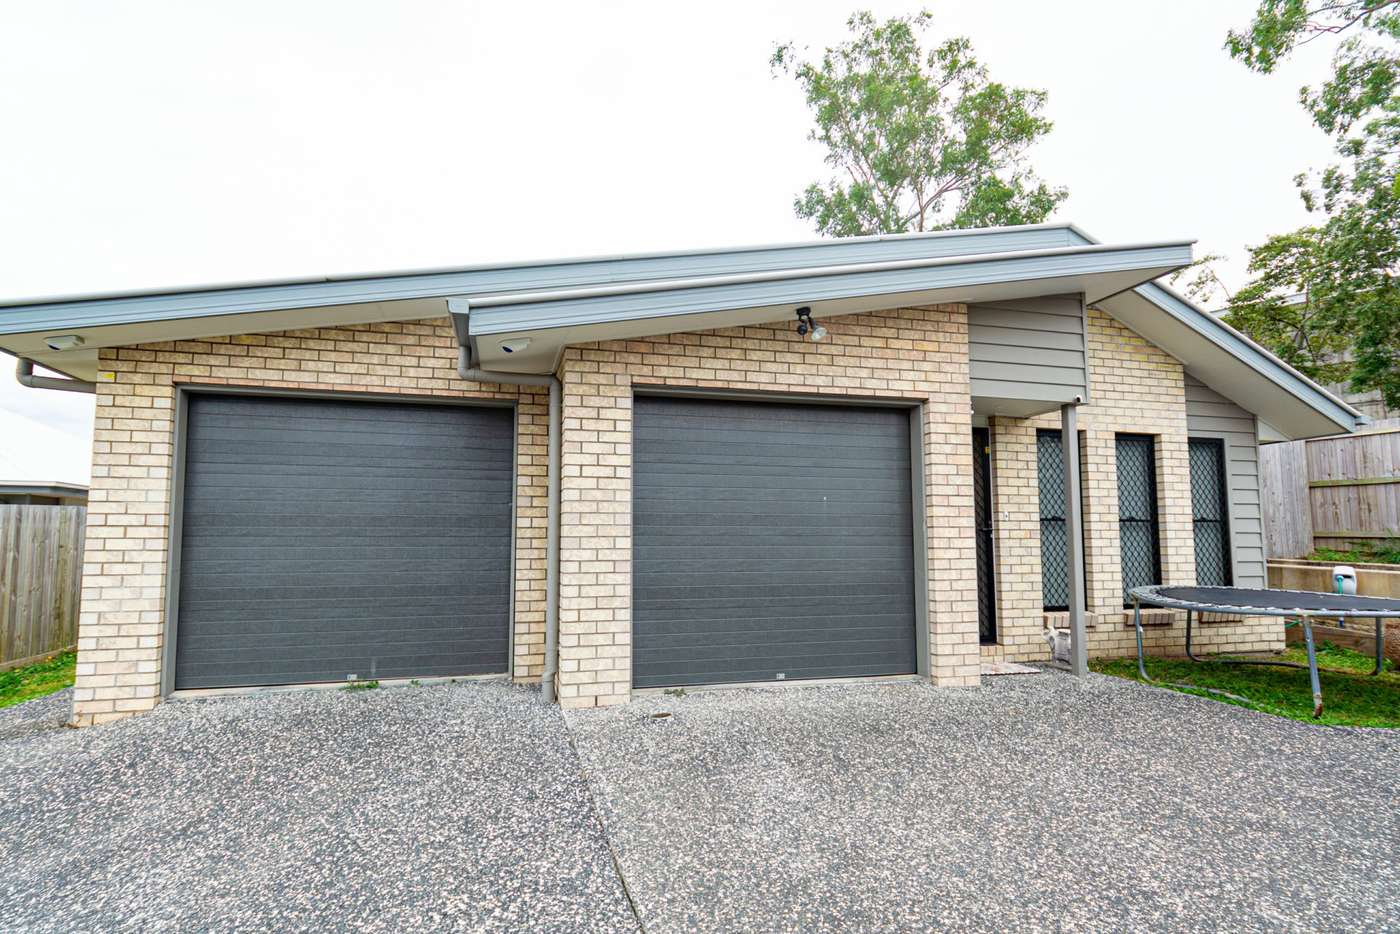 Main view of Homely house listing, 17 Chandon Court, Hillcrest QLD 4118